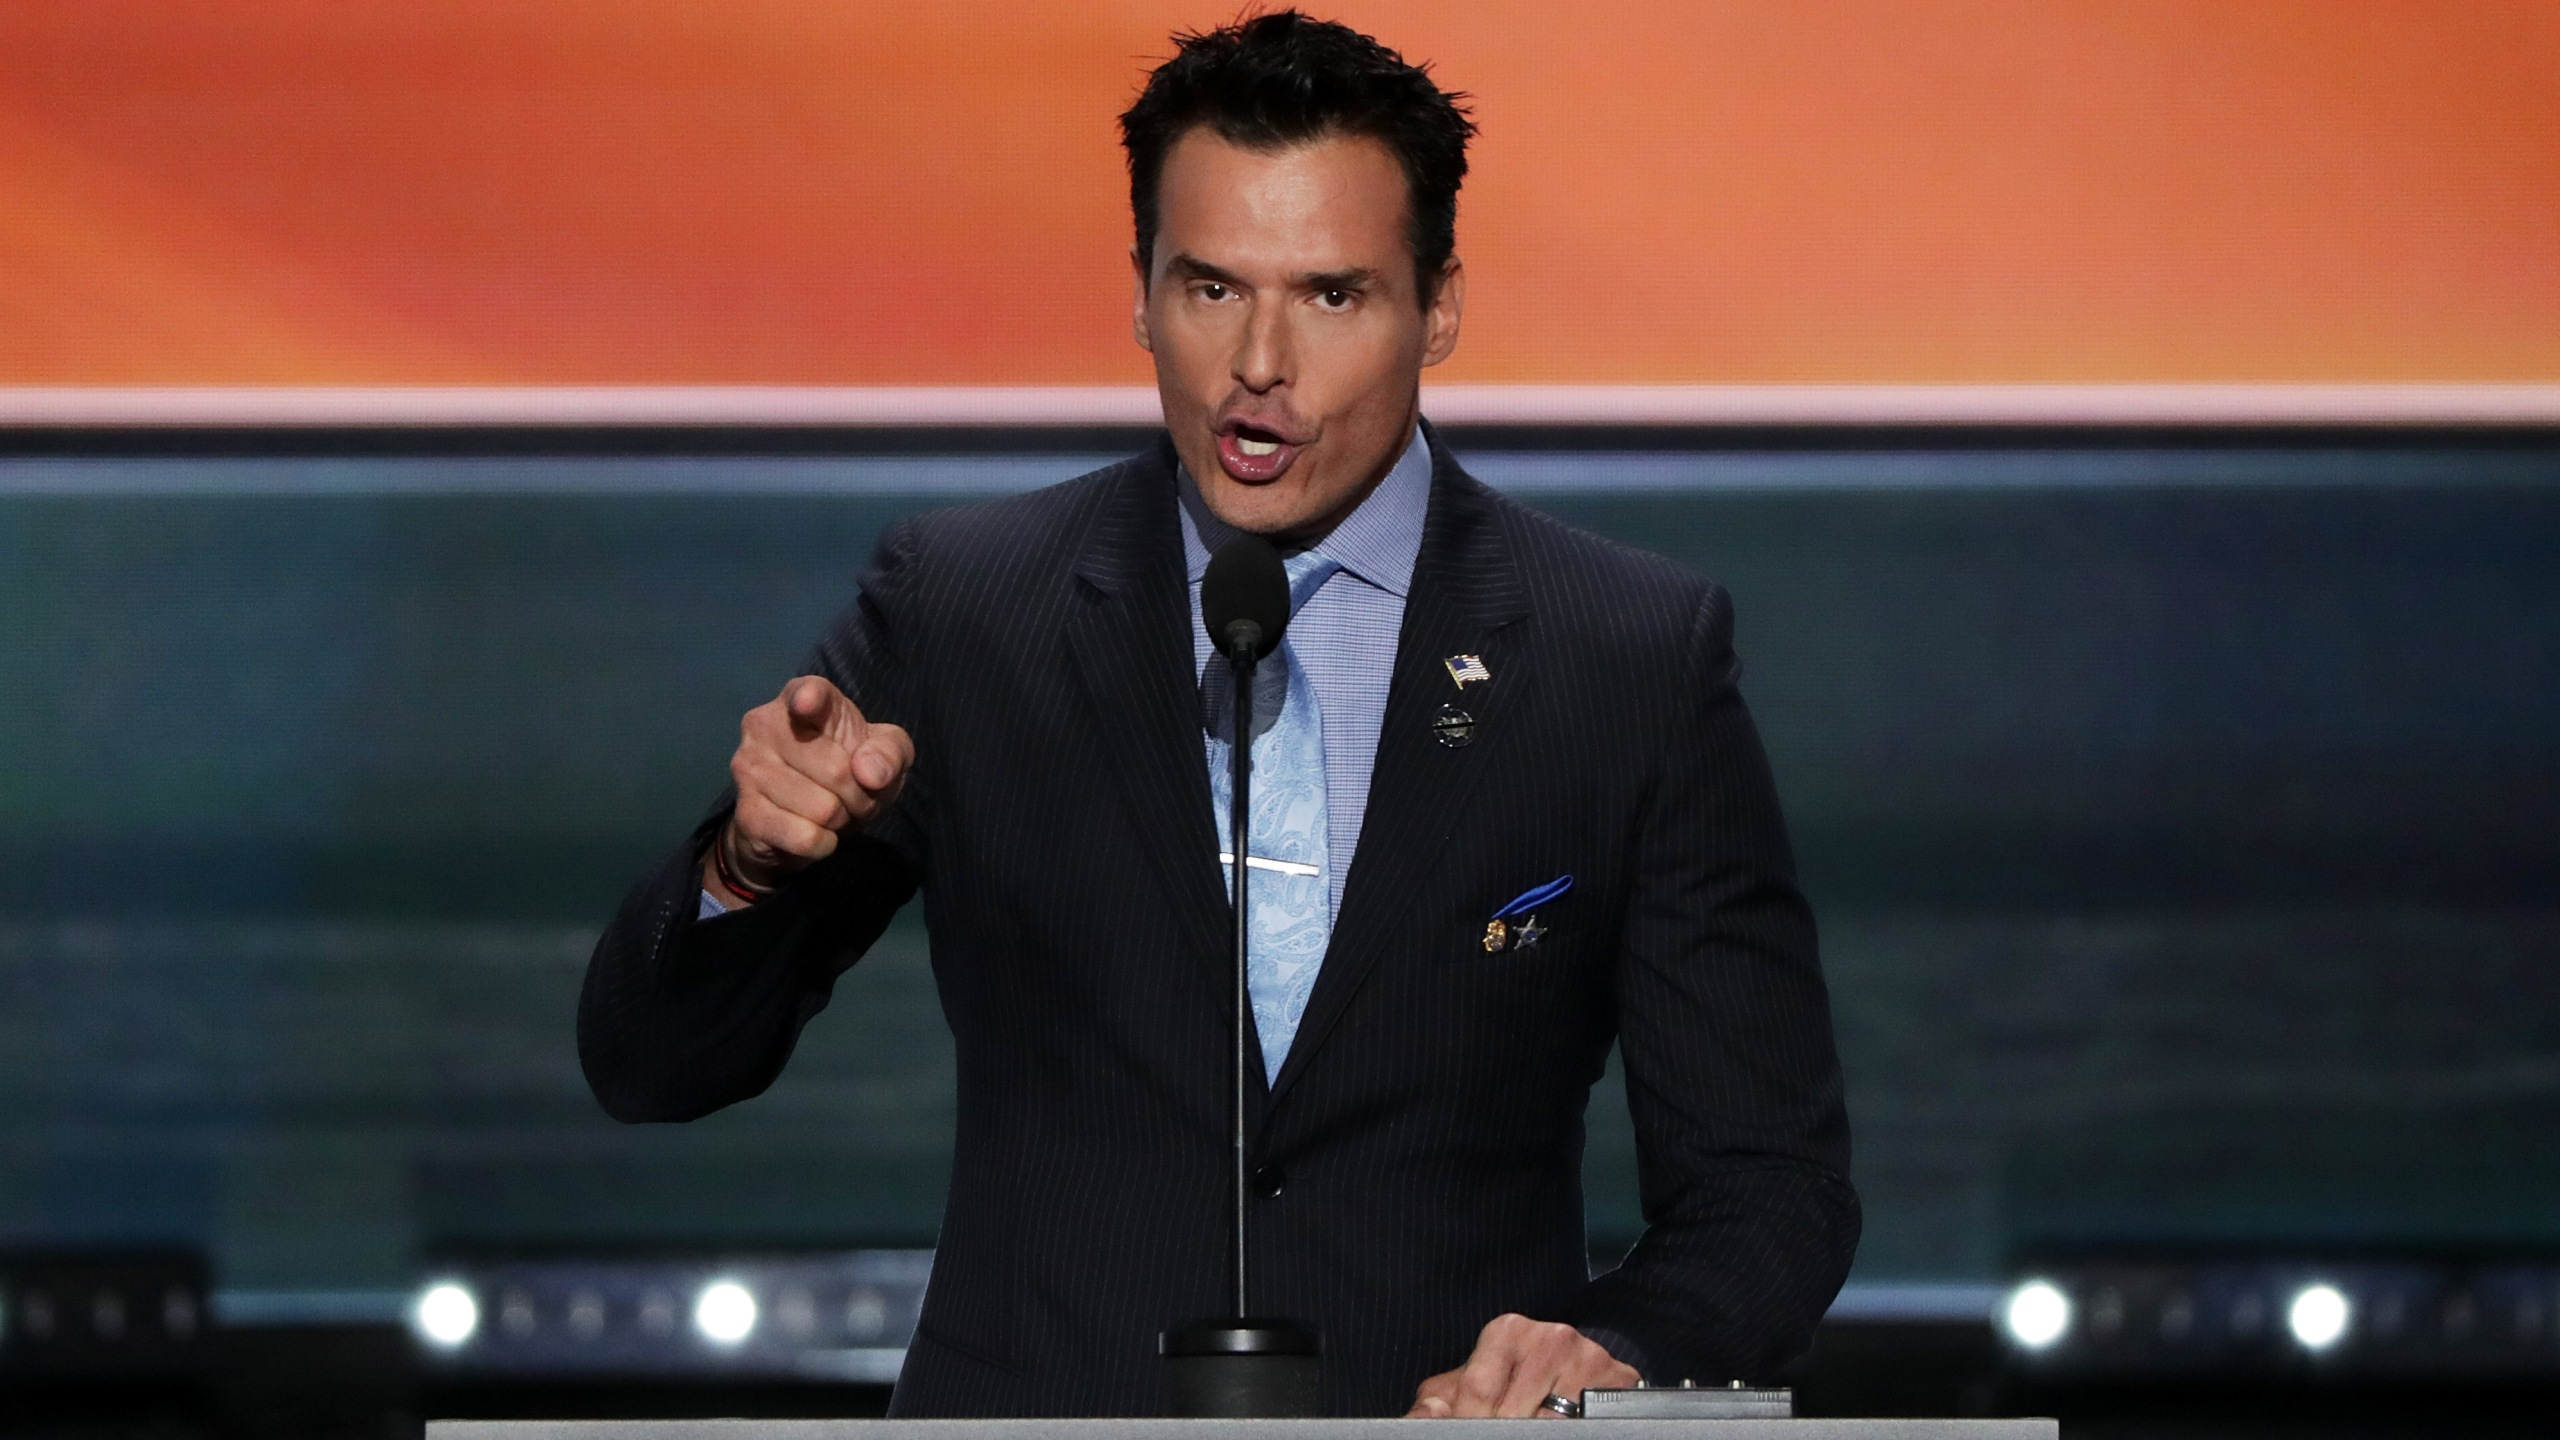 Antonio Sabato Jr. delivers a speech on the first day of the Republican National Convention on July 18, 2016 at the Quicken Loans Arena in Cleveland, Ohio. (Credit: Alex Wong/Getty Images)